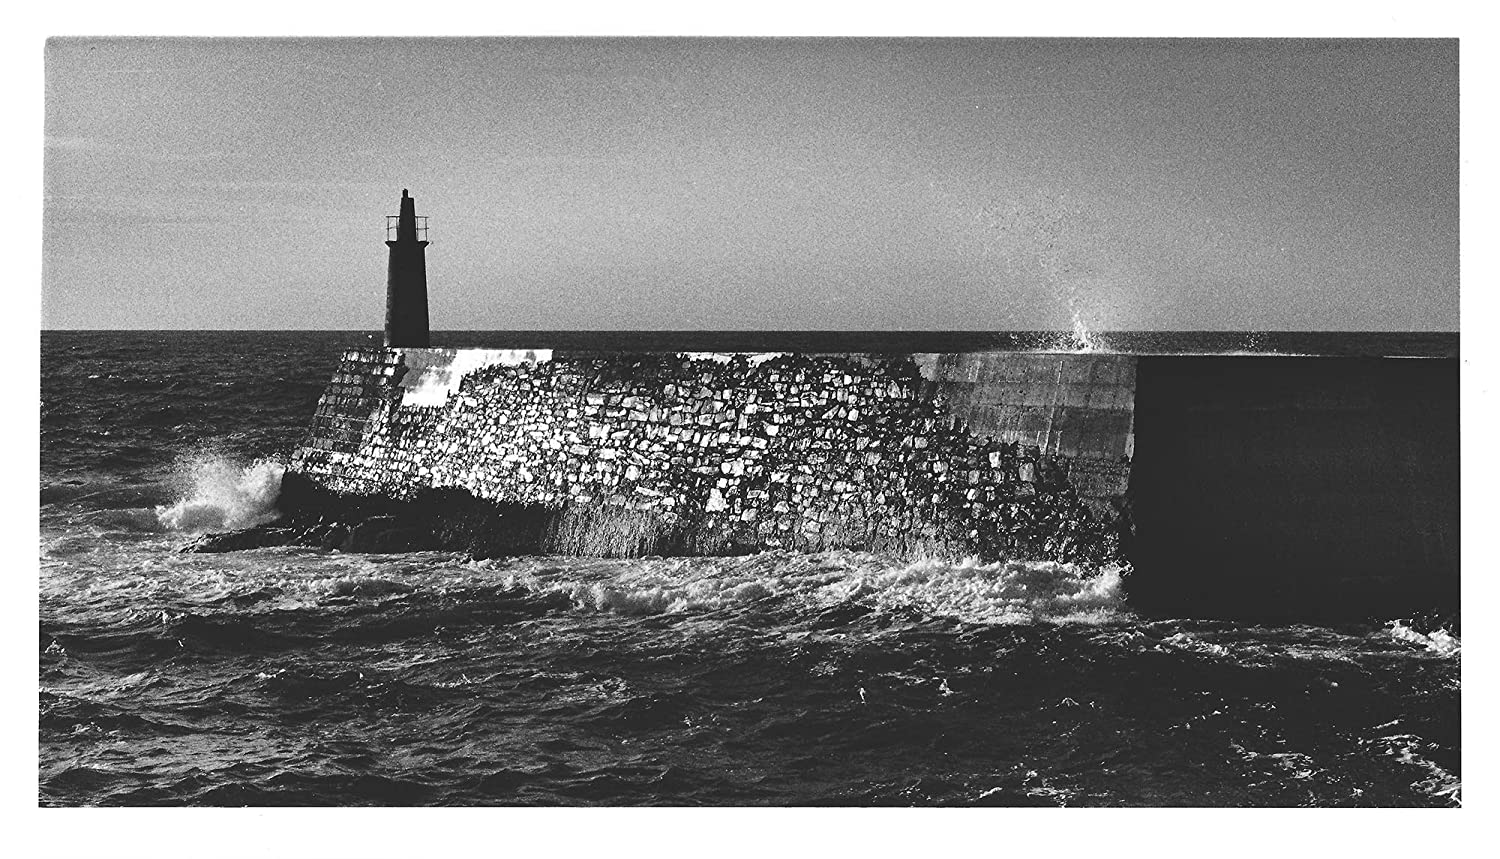 Panoramic landscape of a lighthouse of asturias analogue